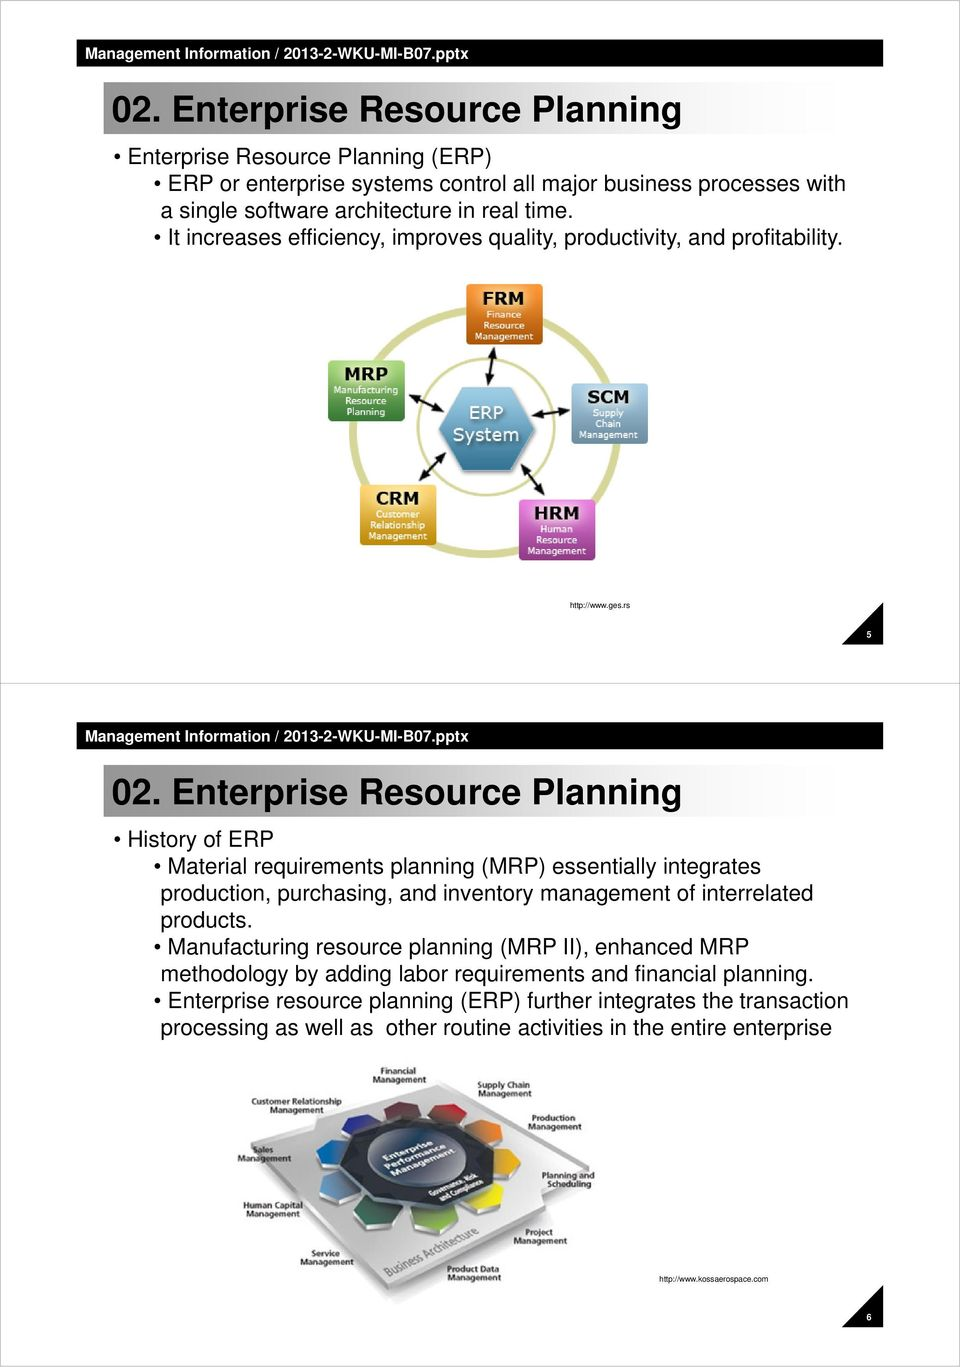 Enterprise Resource Planning Historyof ERP Material requirements planning (MRP) essentially integrates production, purchasing, and inventory management of interrelated products.